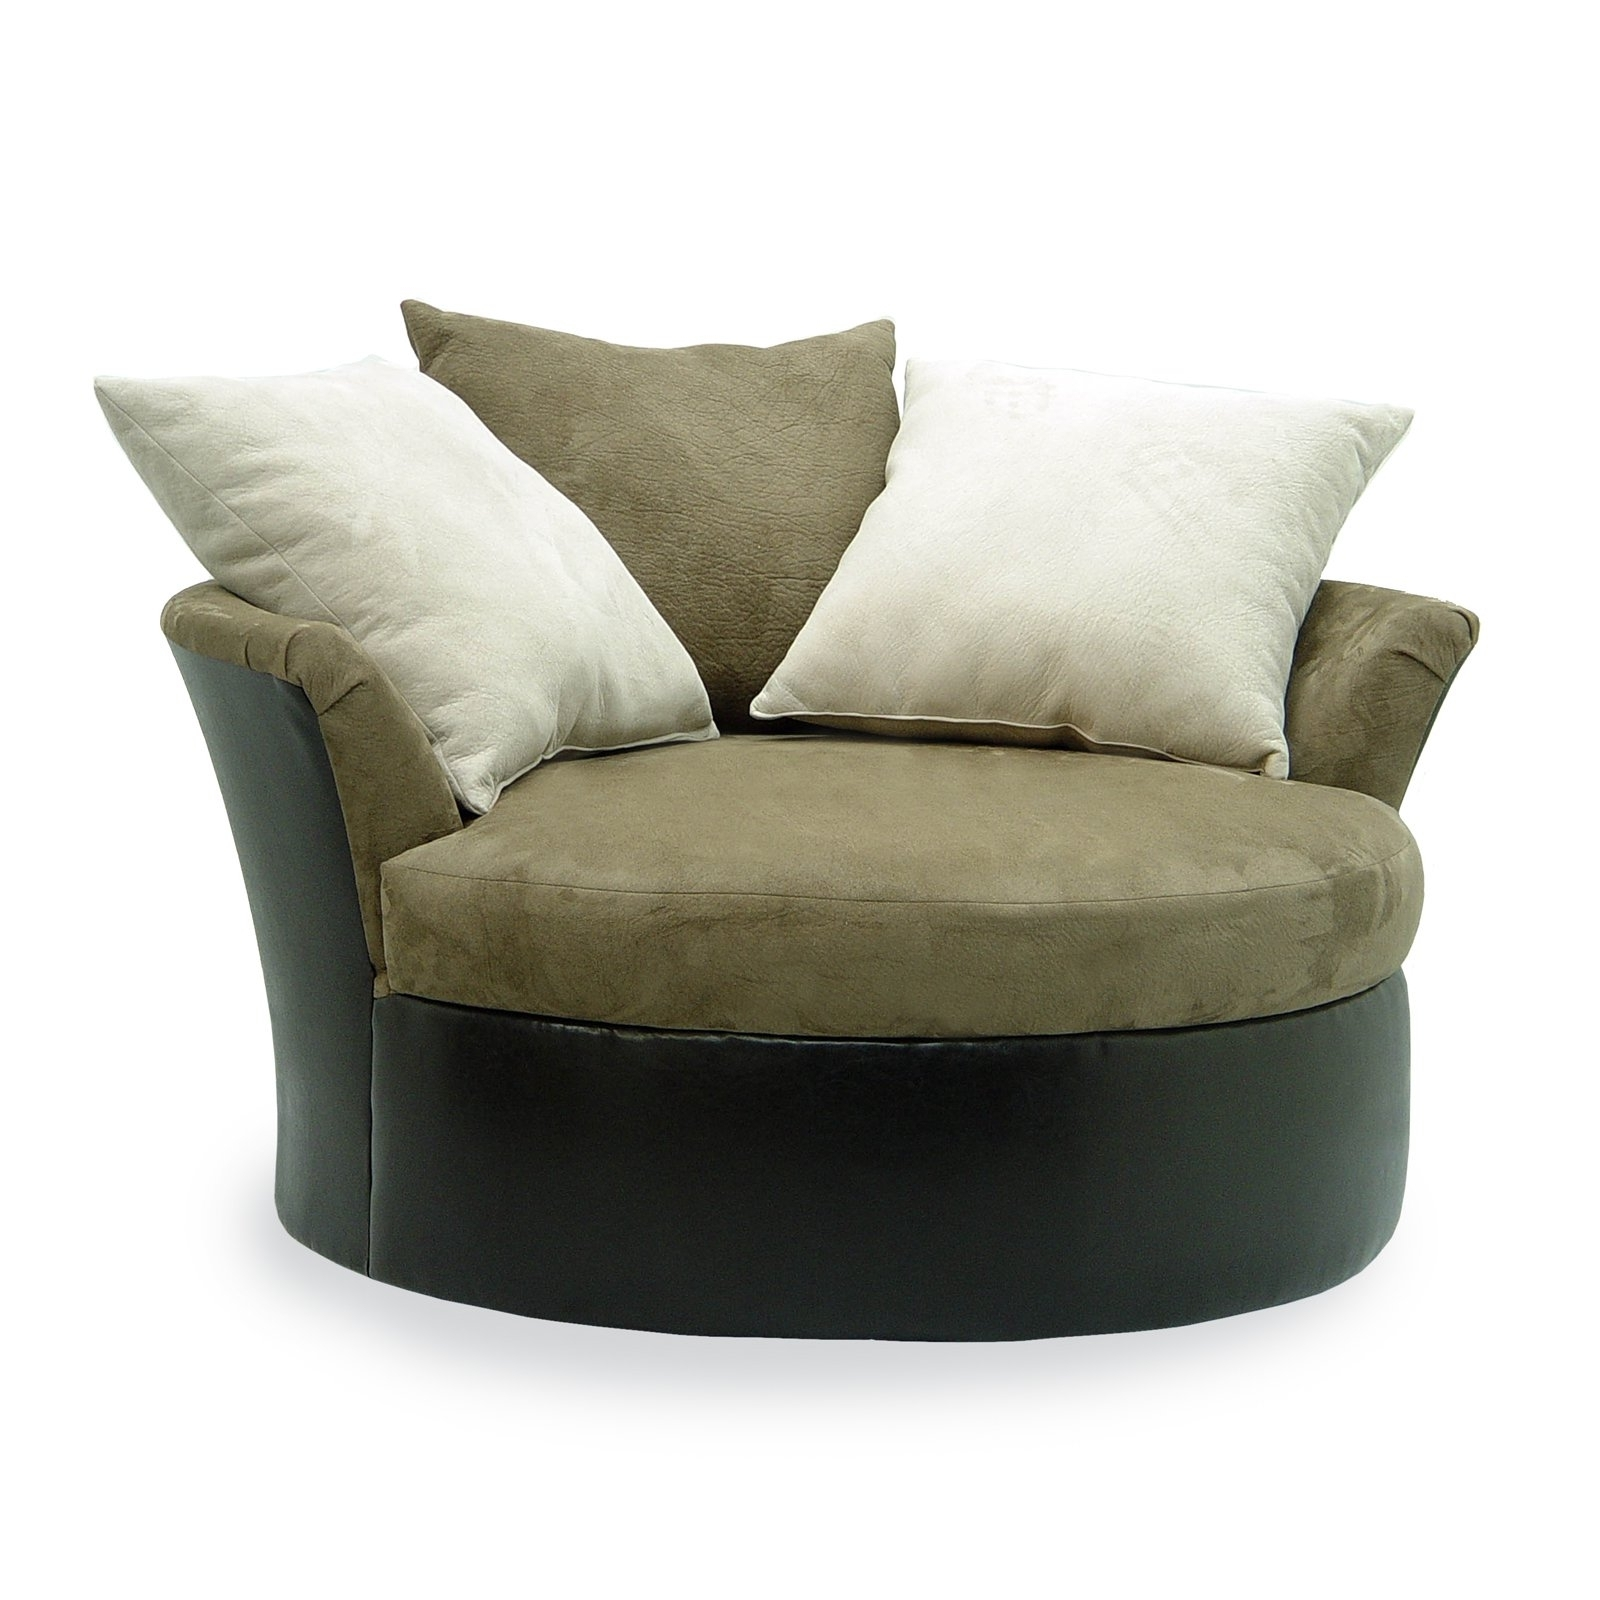 2017 Buy Accent Chaise Lounge Chairs For Your Home – Furniture And Intended For Chaise Chairs (View 1 of 15)